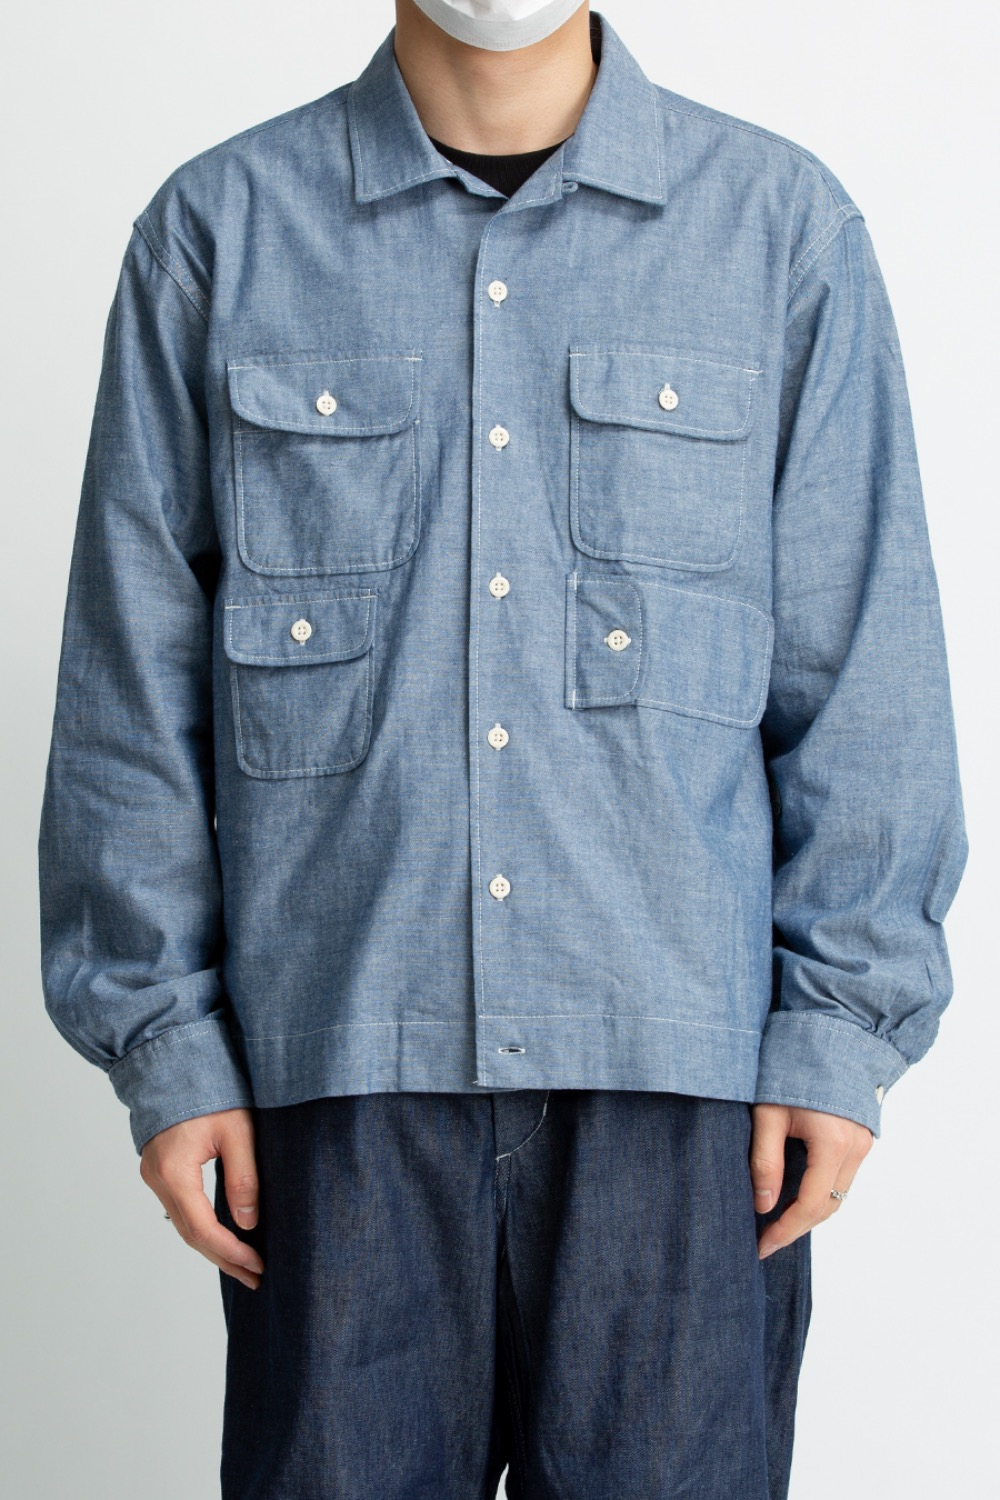 BOWLING SHIRT BLUE COTTON CHAMBRAY